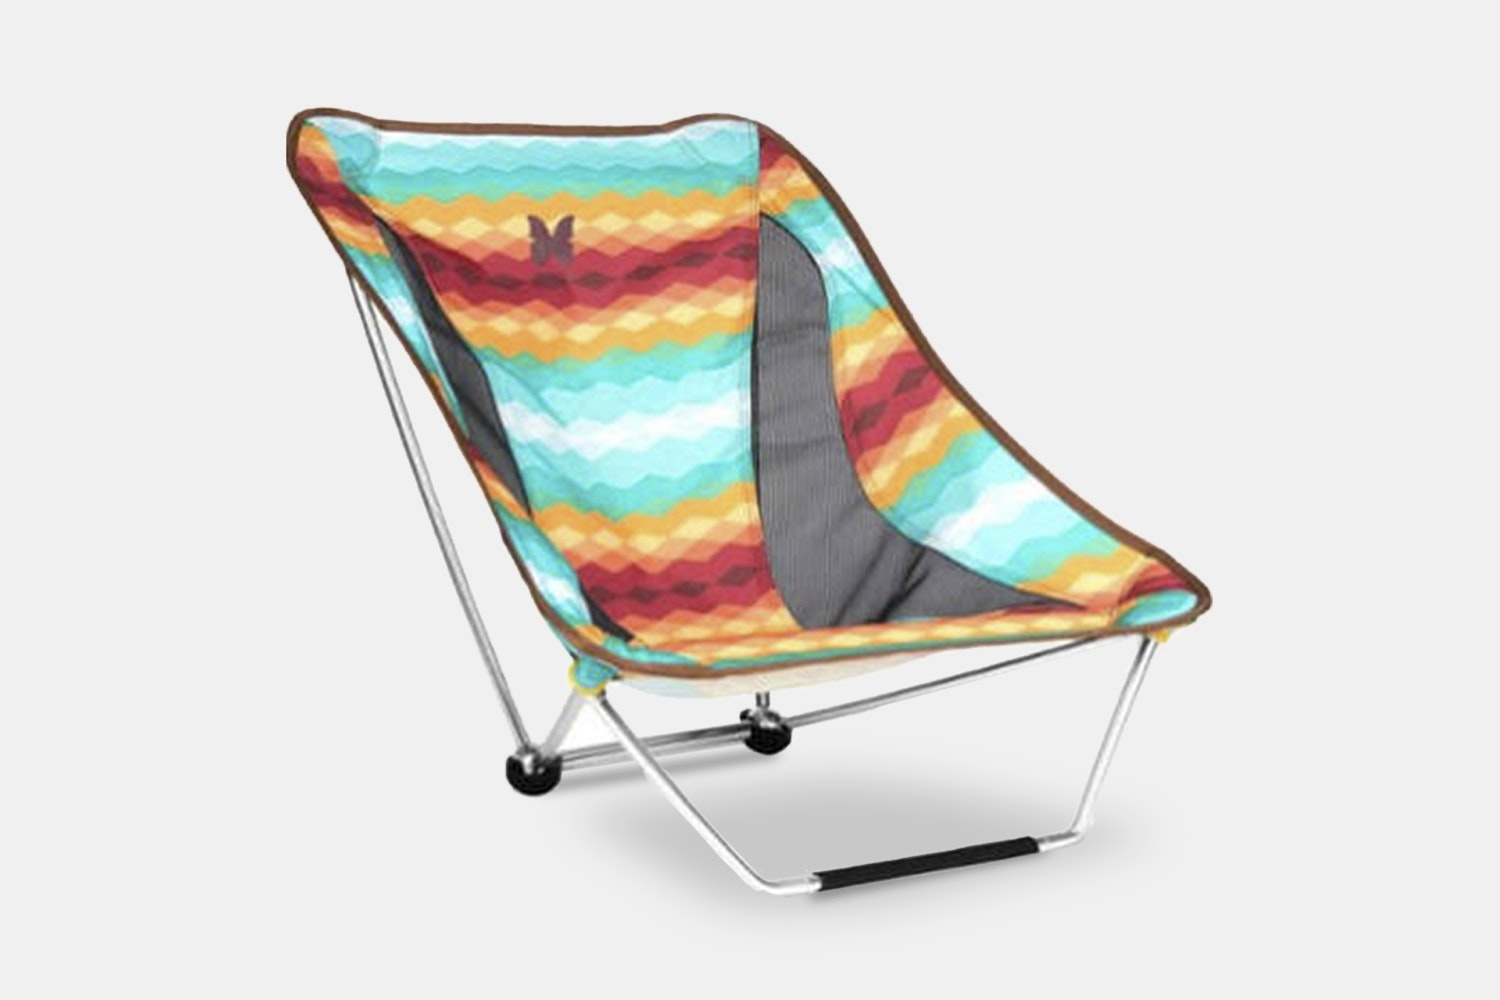 alite mantis chair tommy bahama beach uk price reviews massdrop note at checkout you ll have your choice of color presidio green base dots 3 riptide or southwest